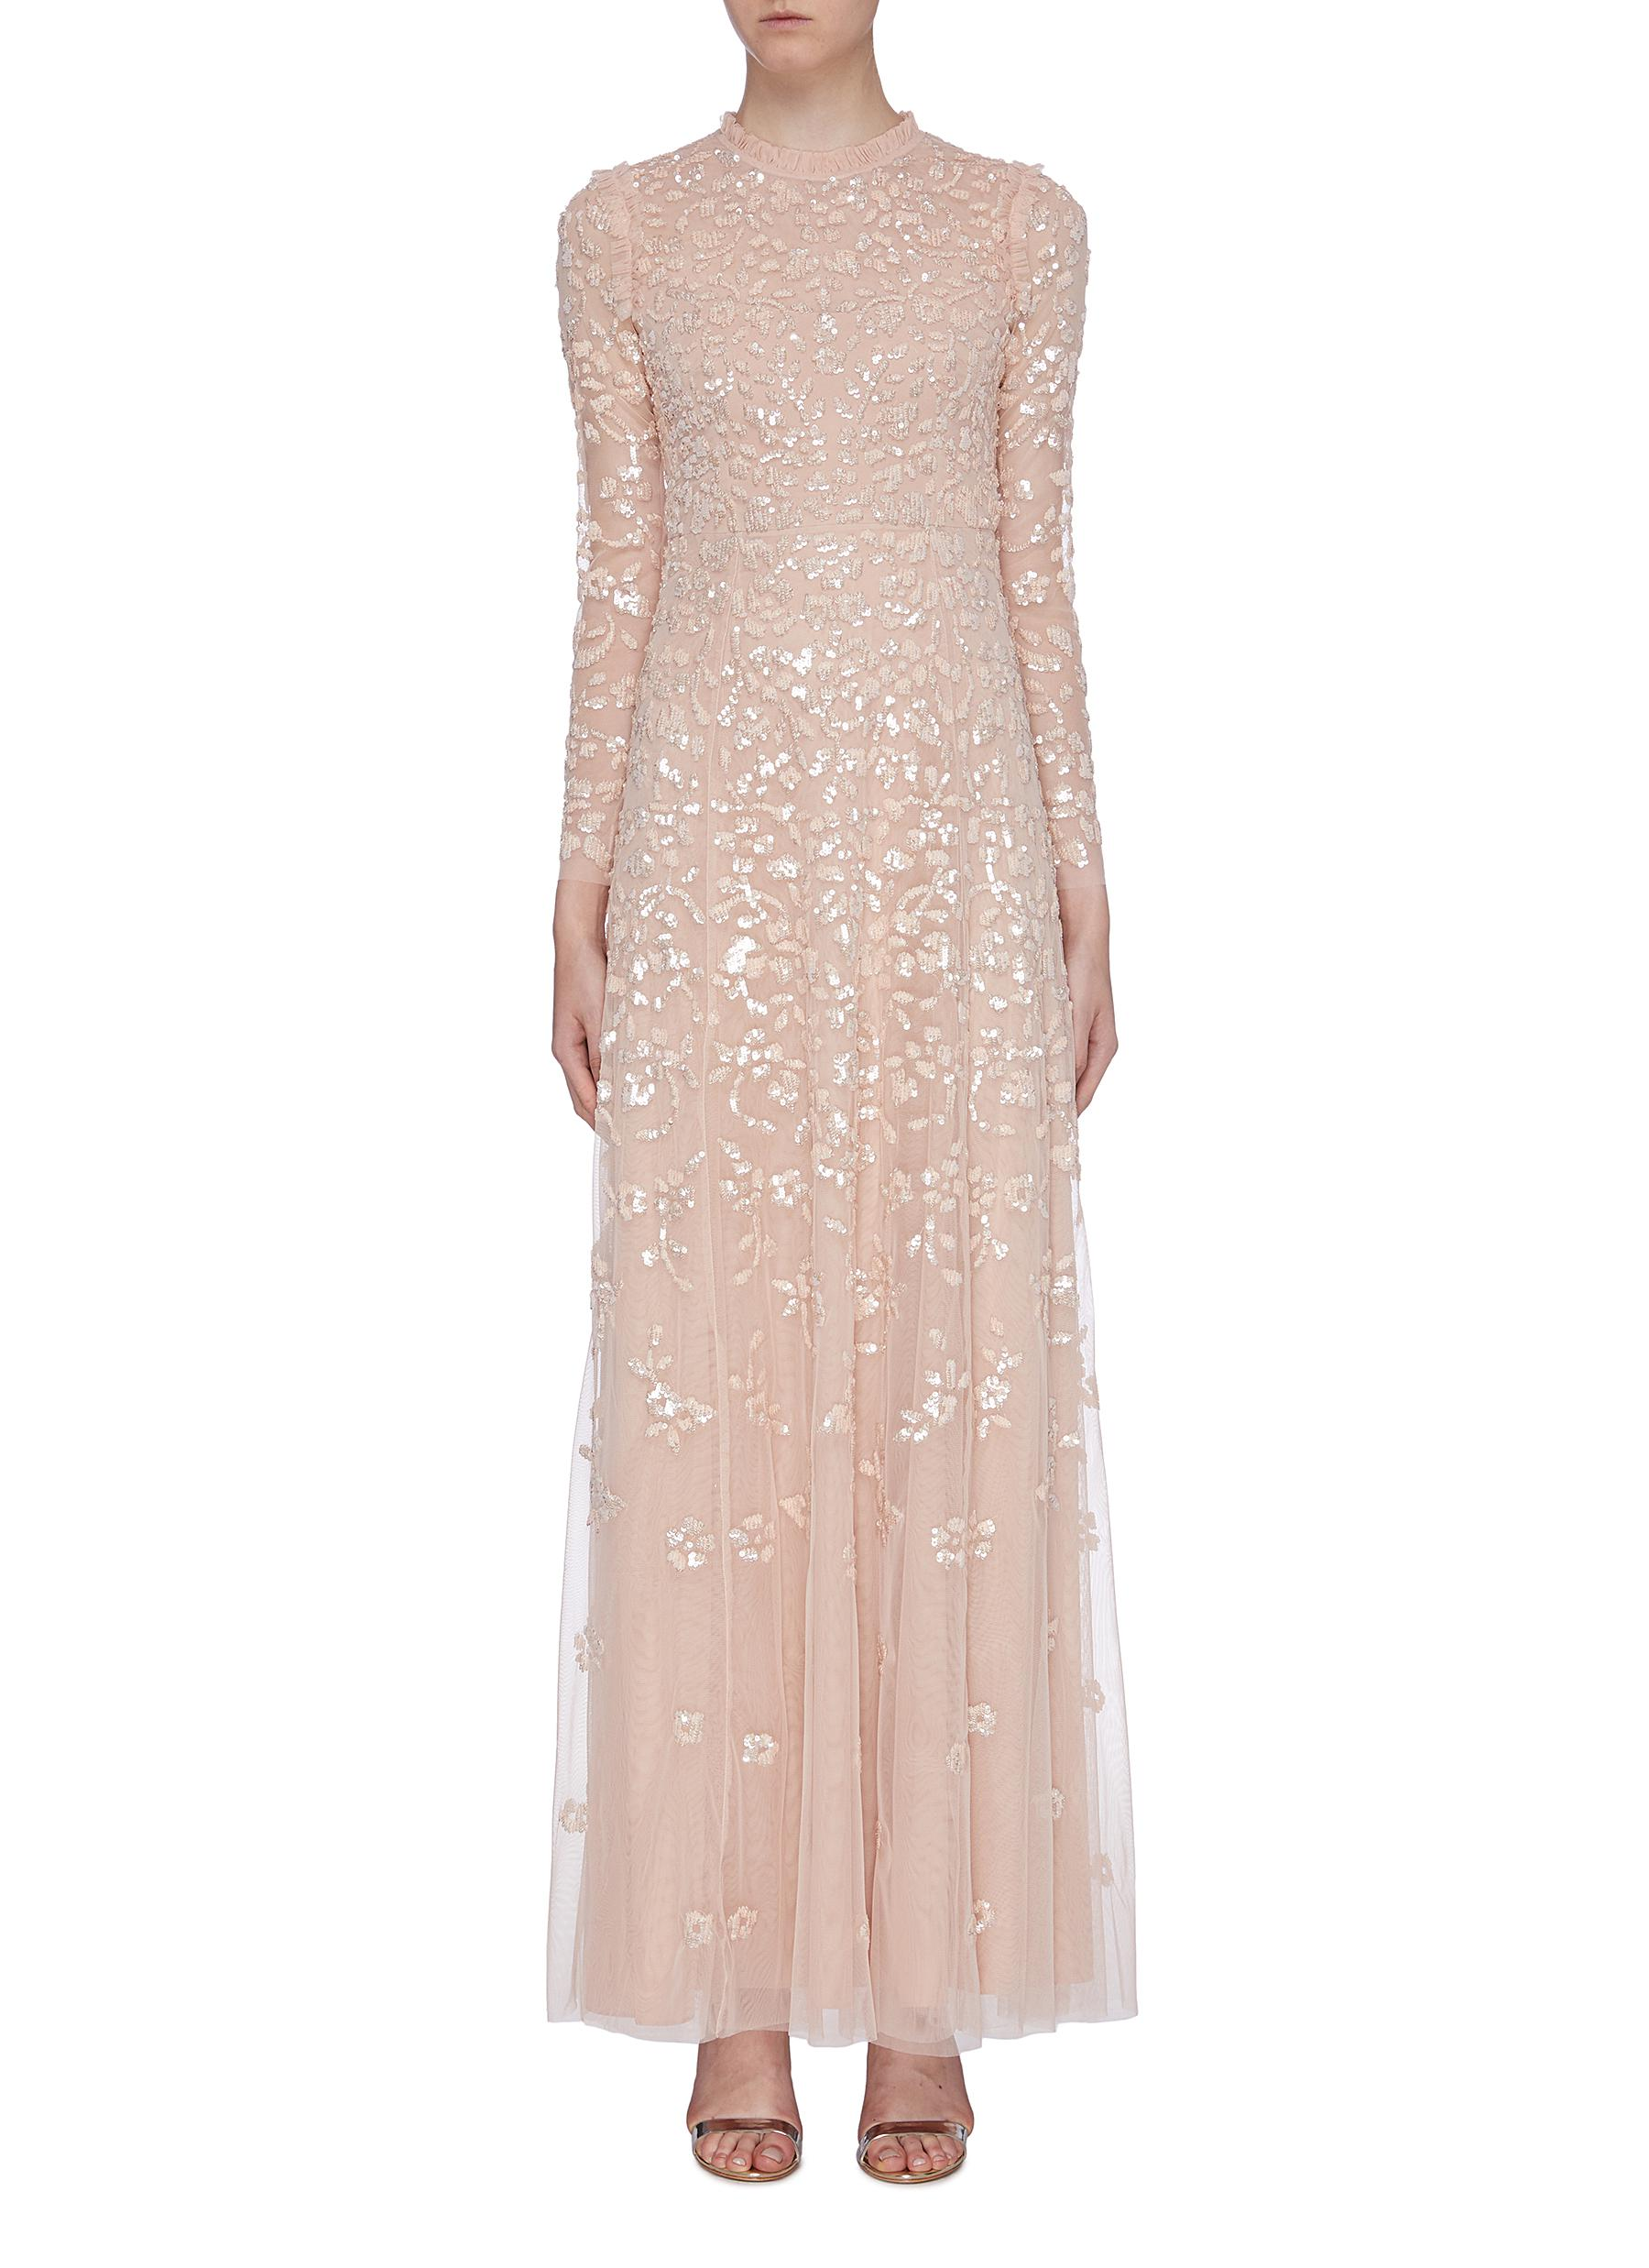 Rosmund sequin floral tulle gown by Needle & Thread